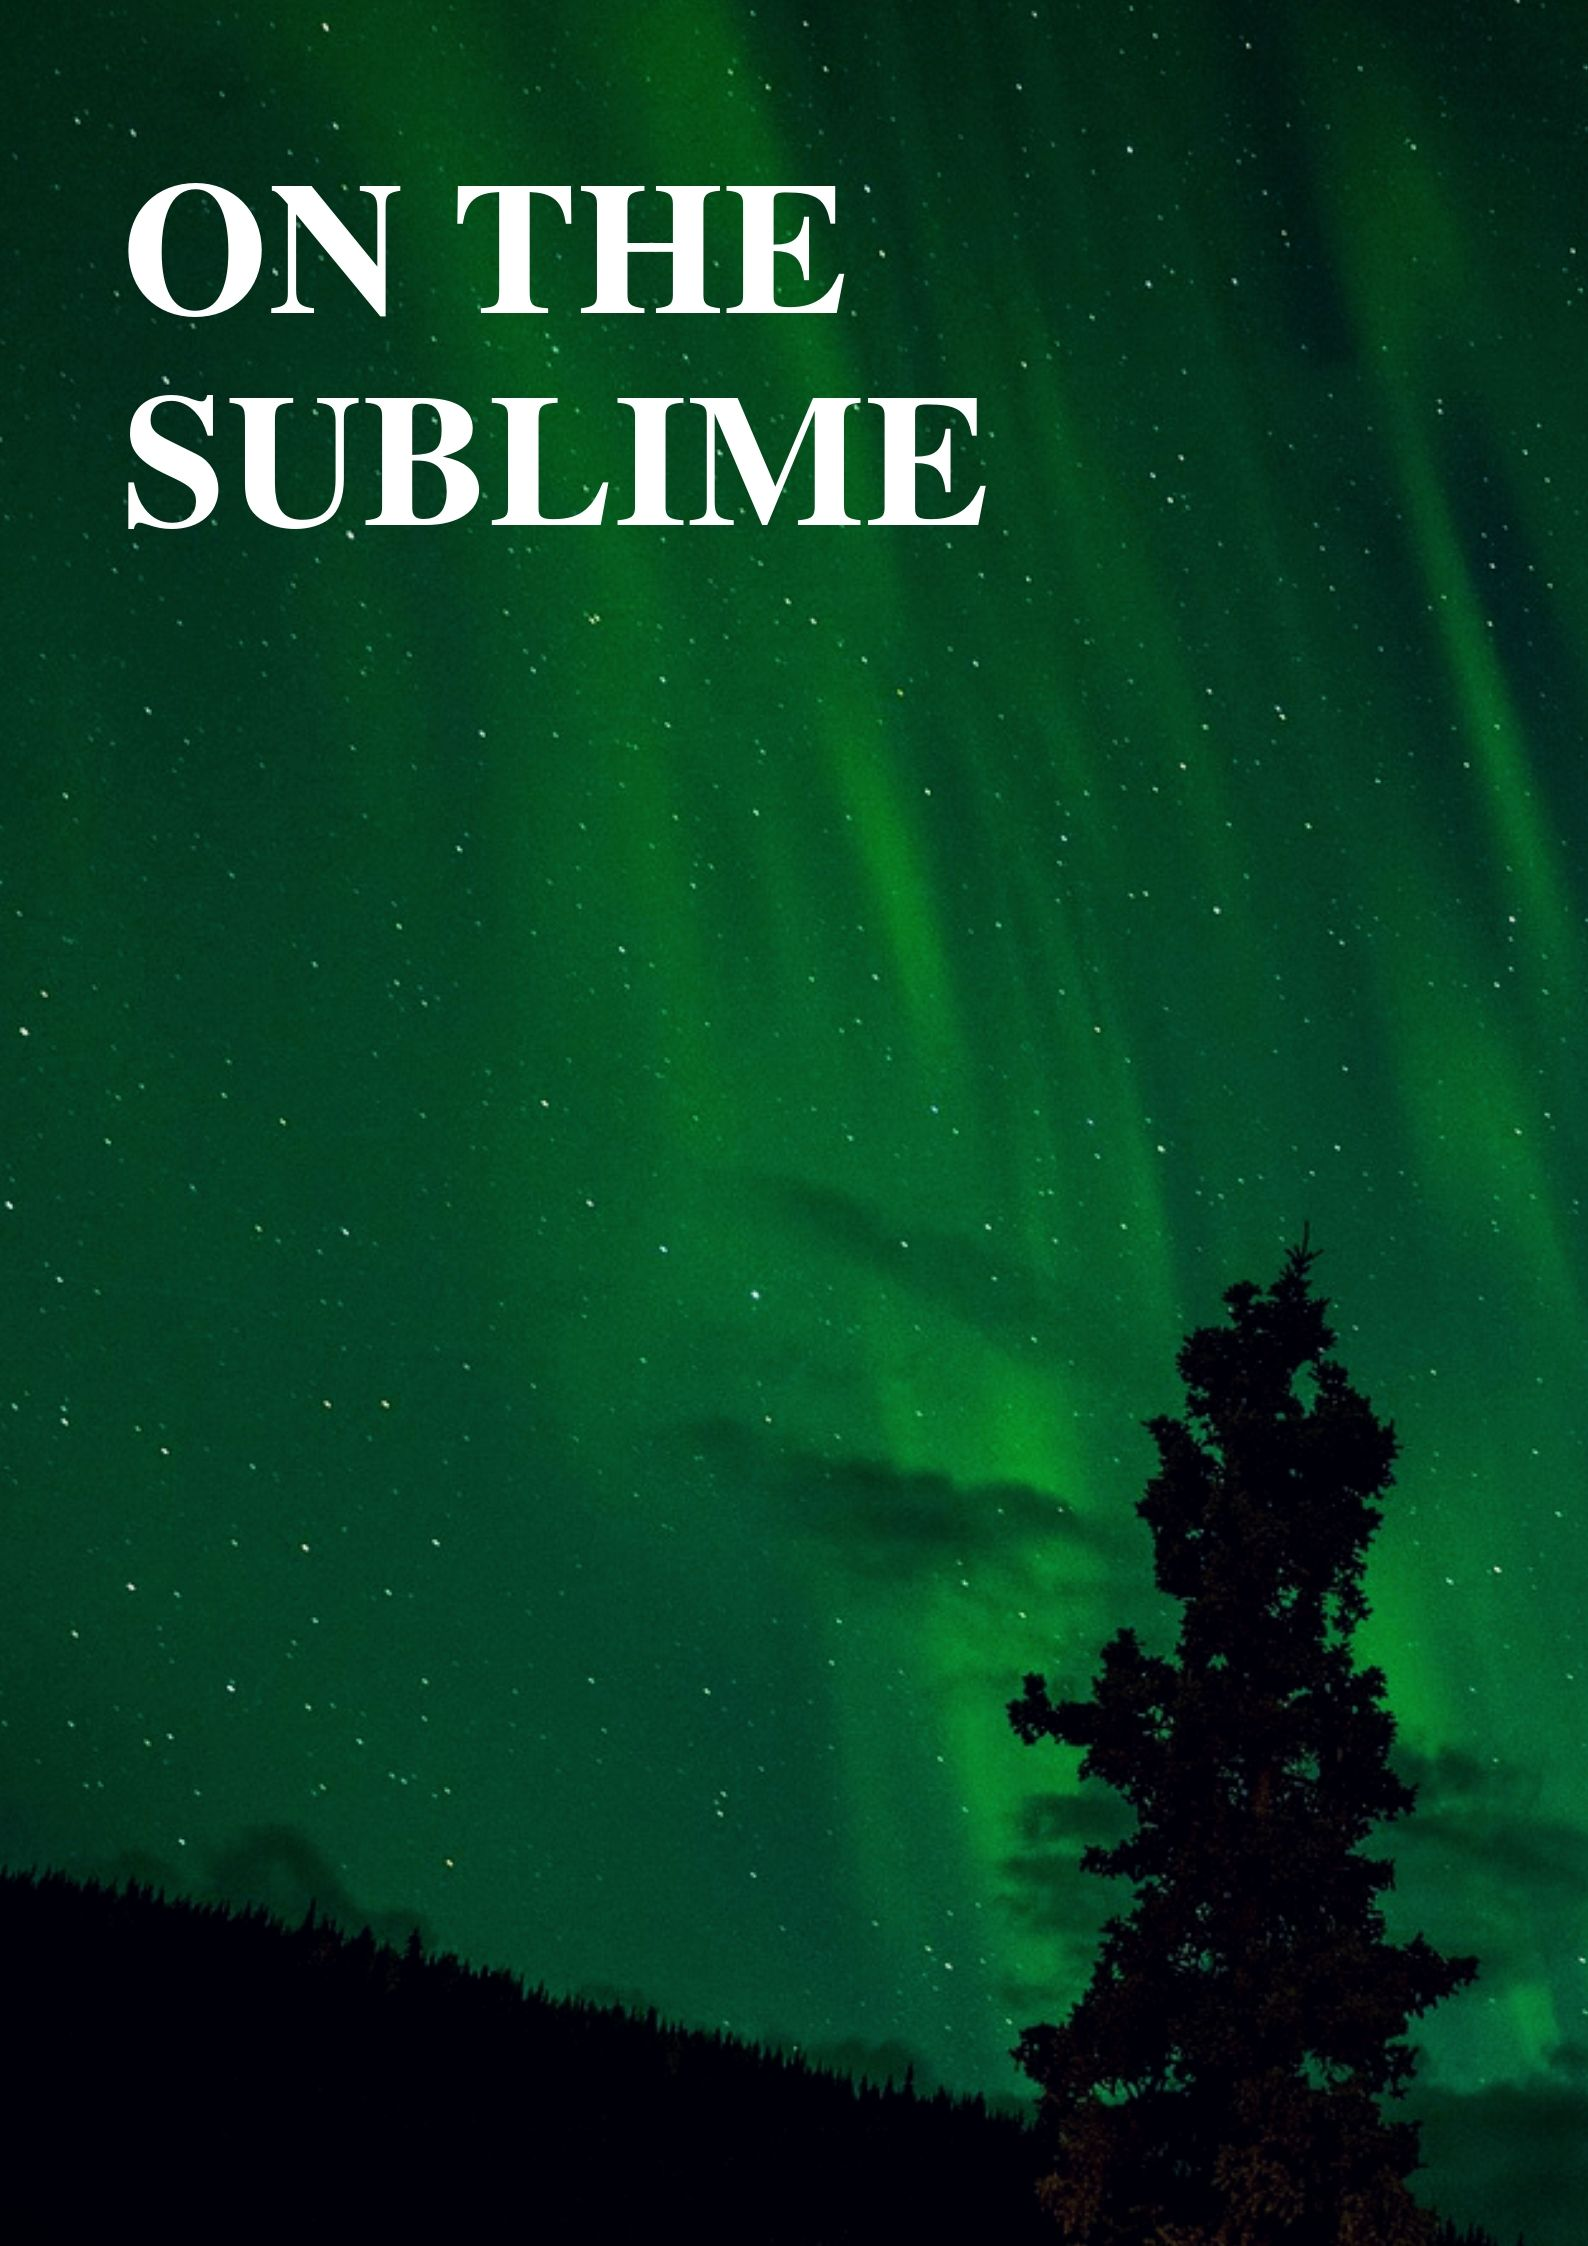 On the sublime by Longinus